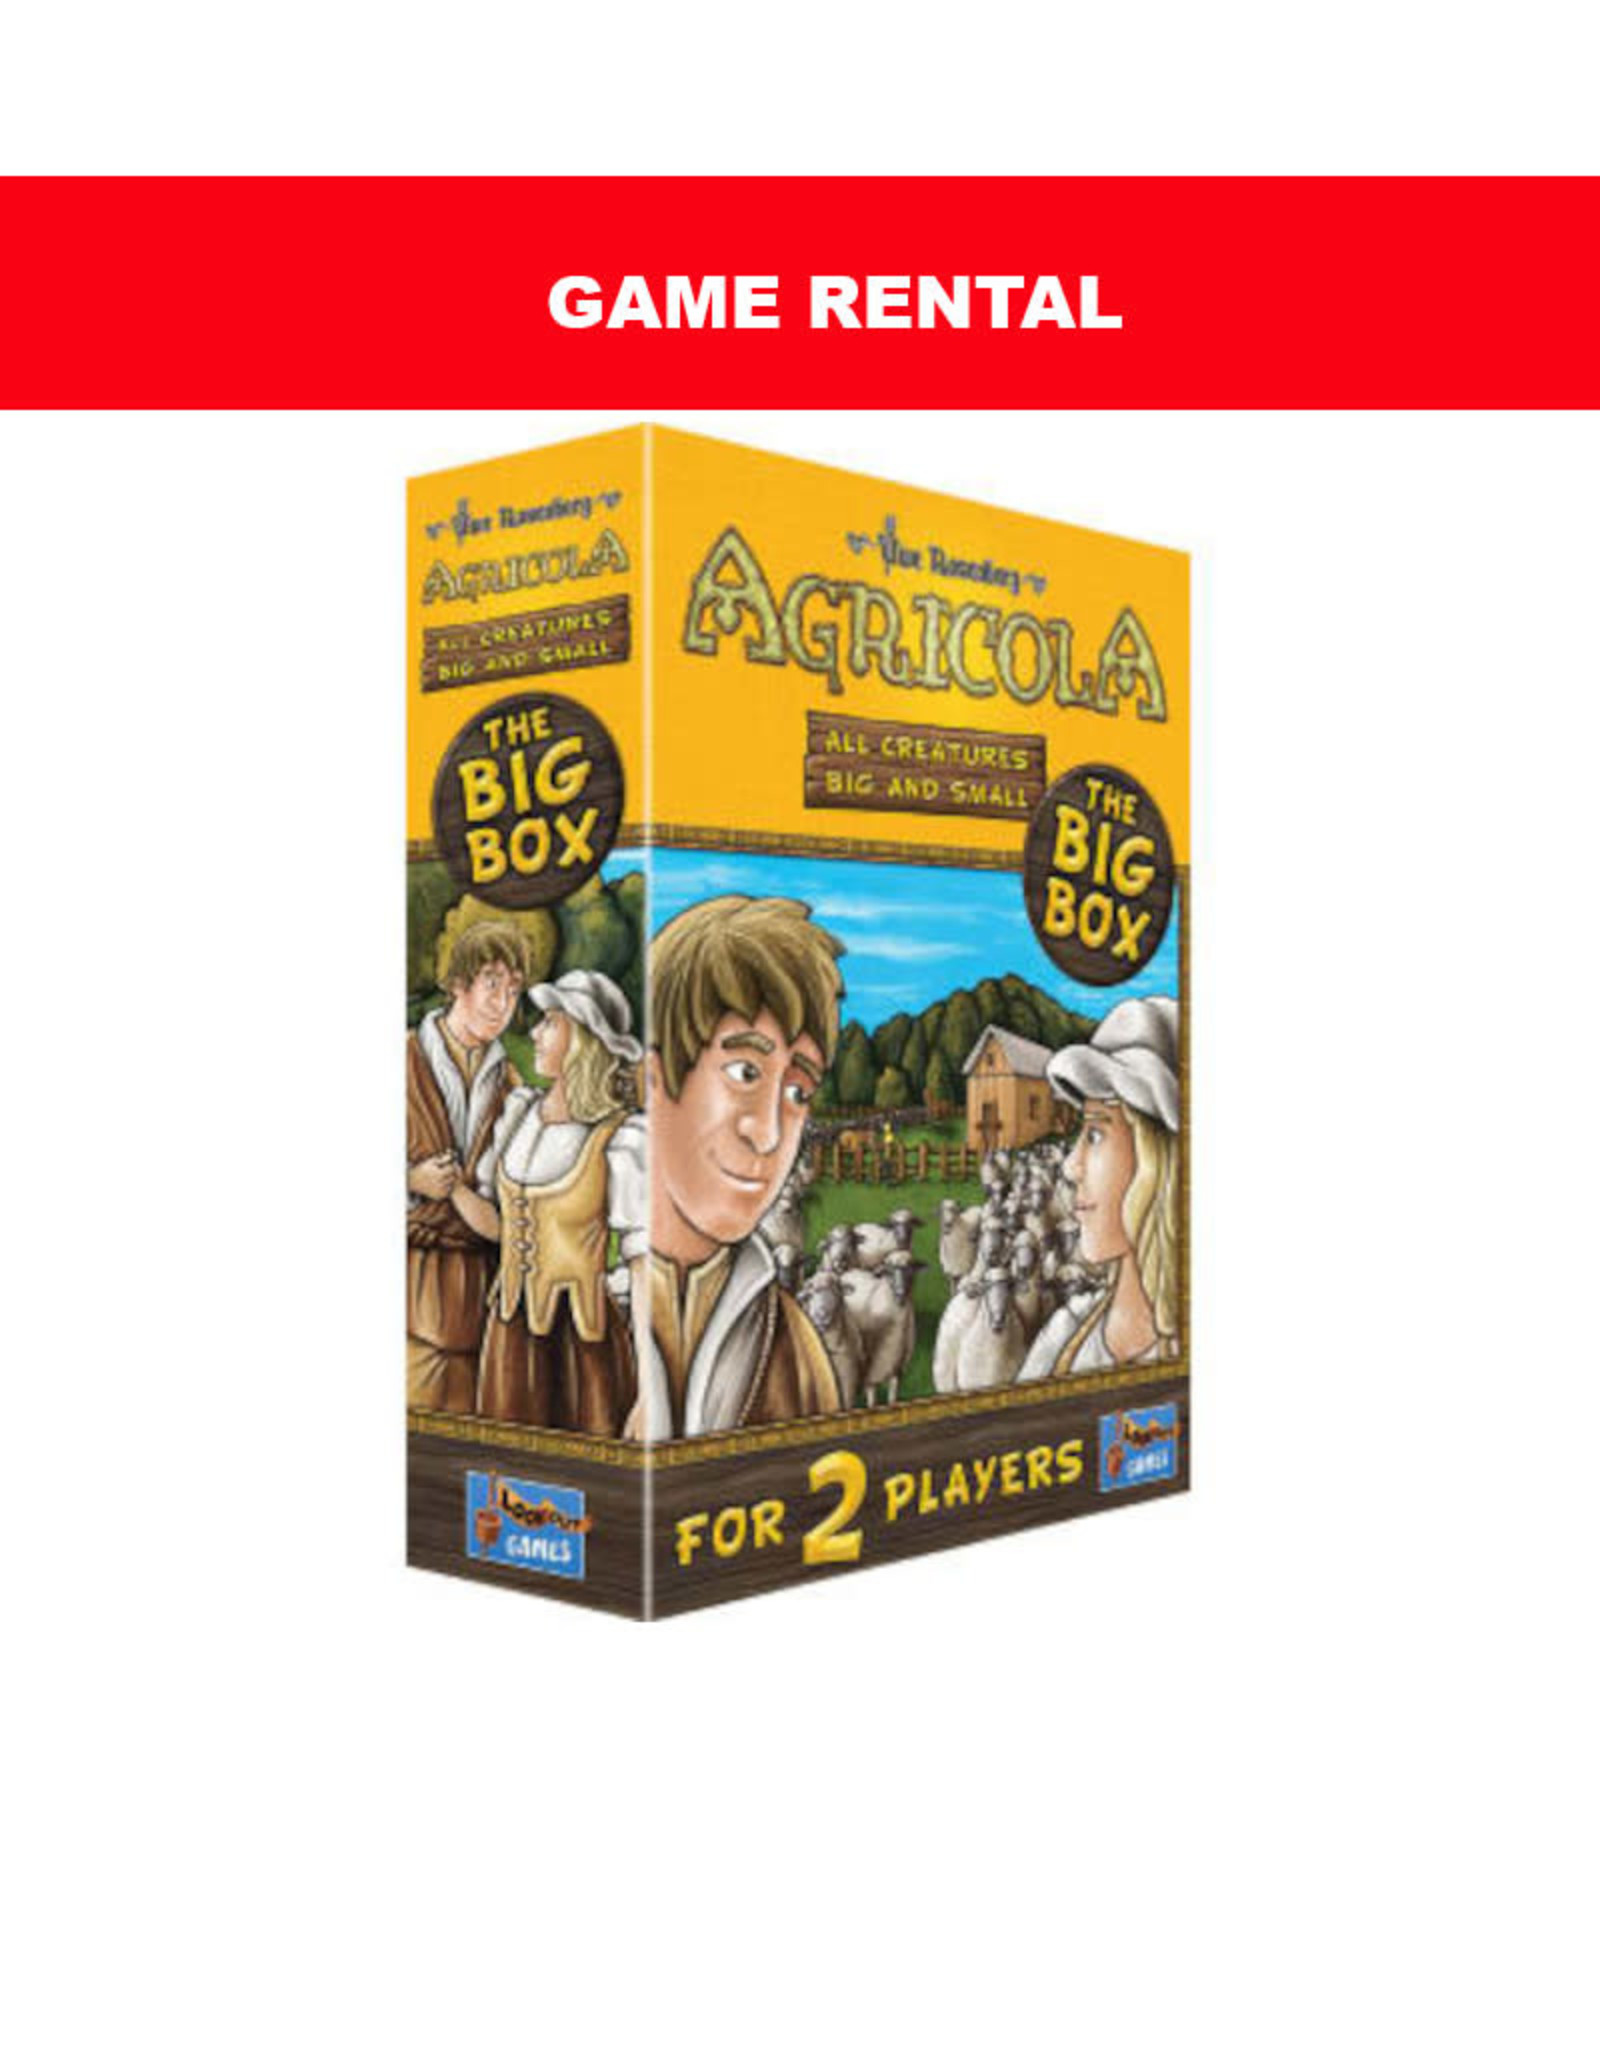 (RENT) Agricola All Creatures Big and Small Per Day. Love It! Buy It!